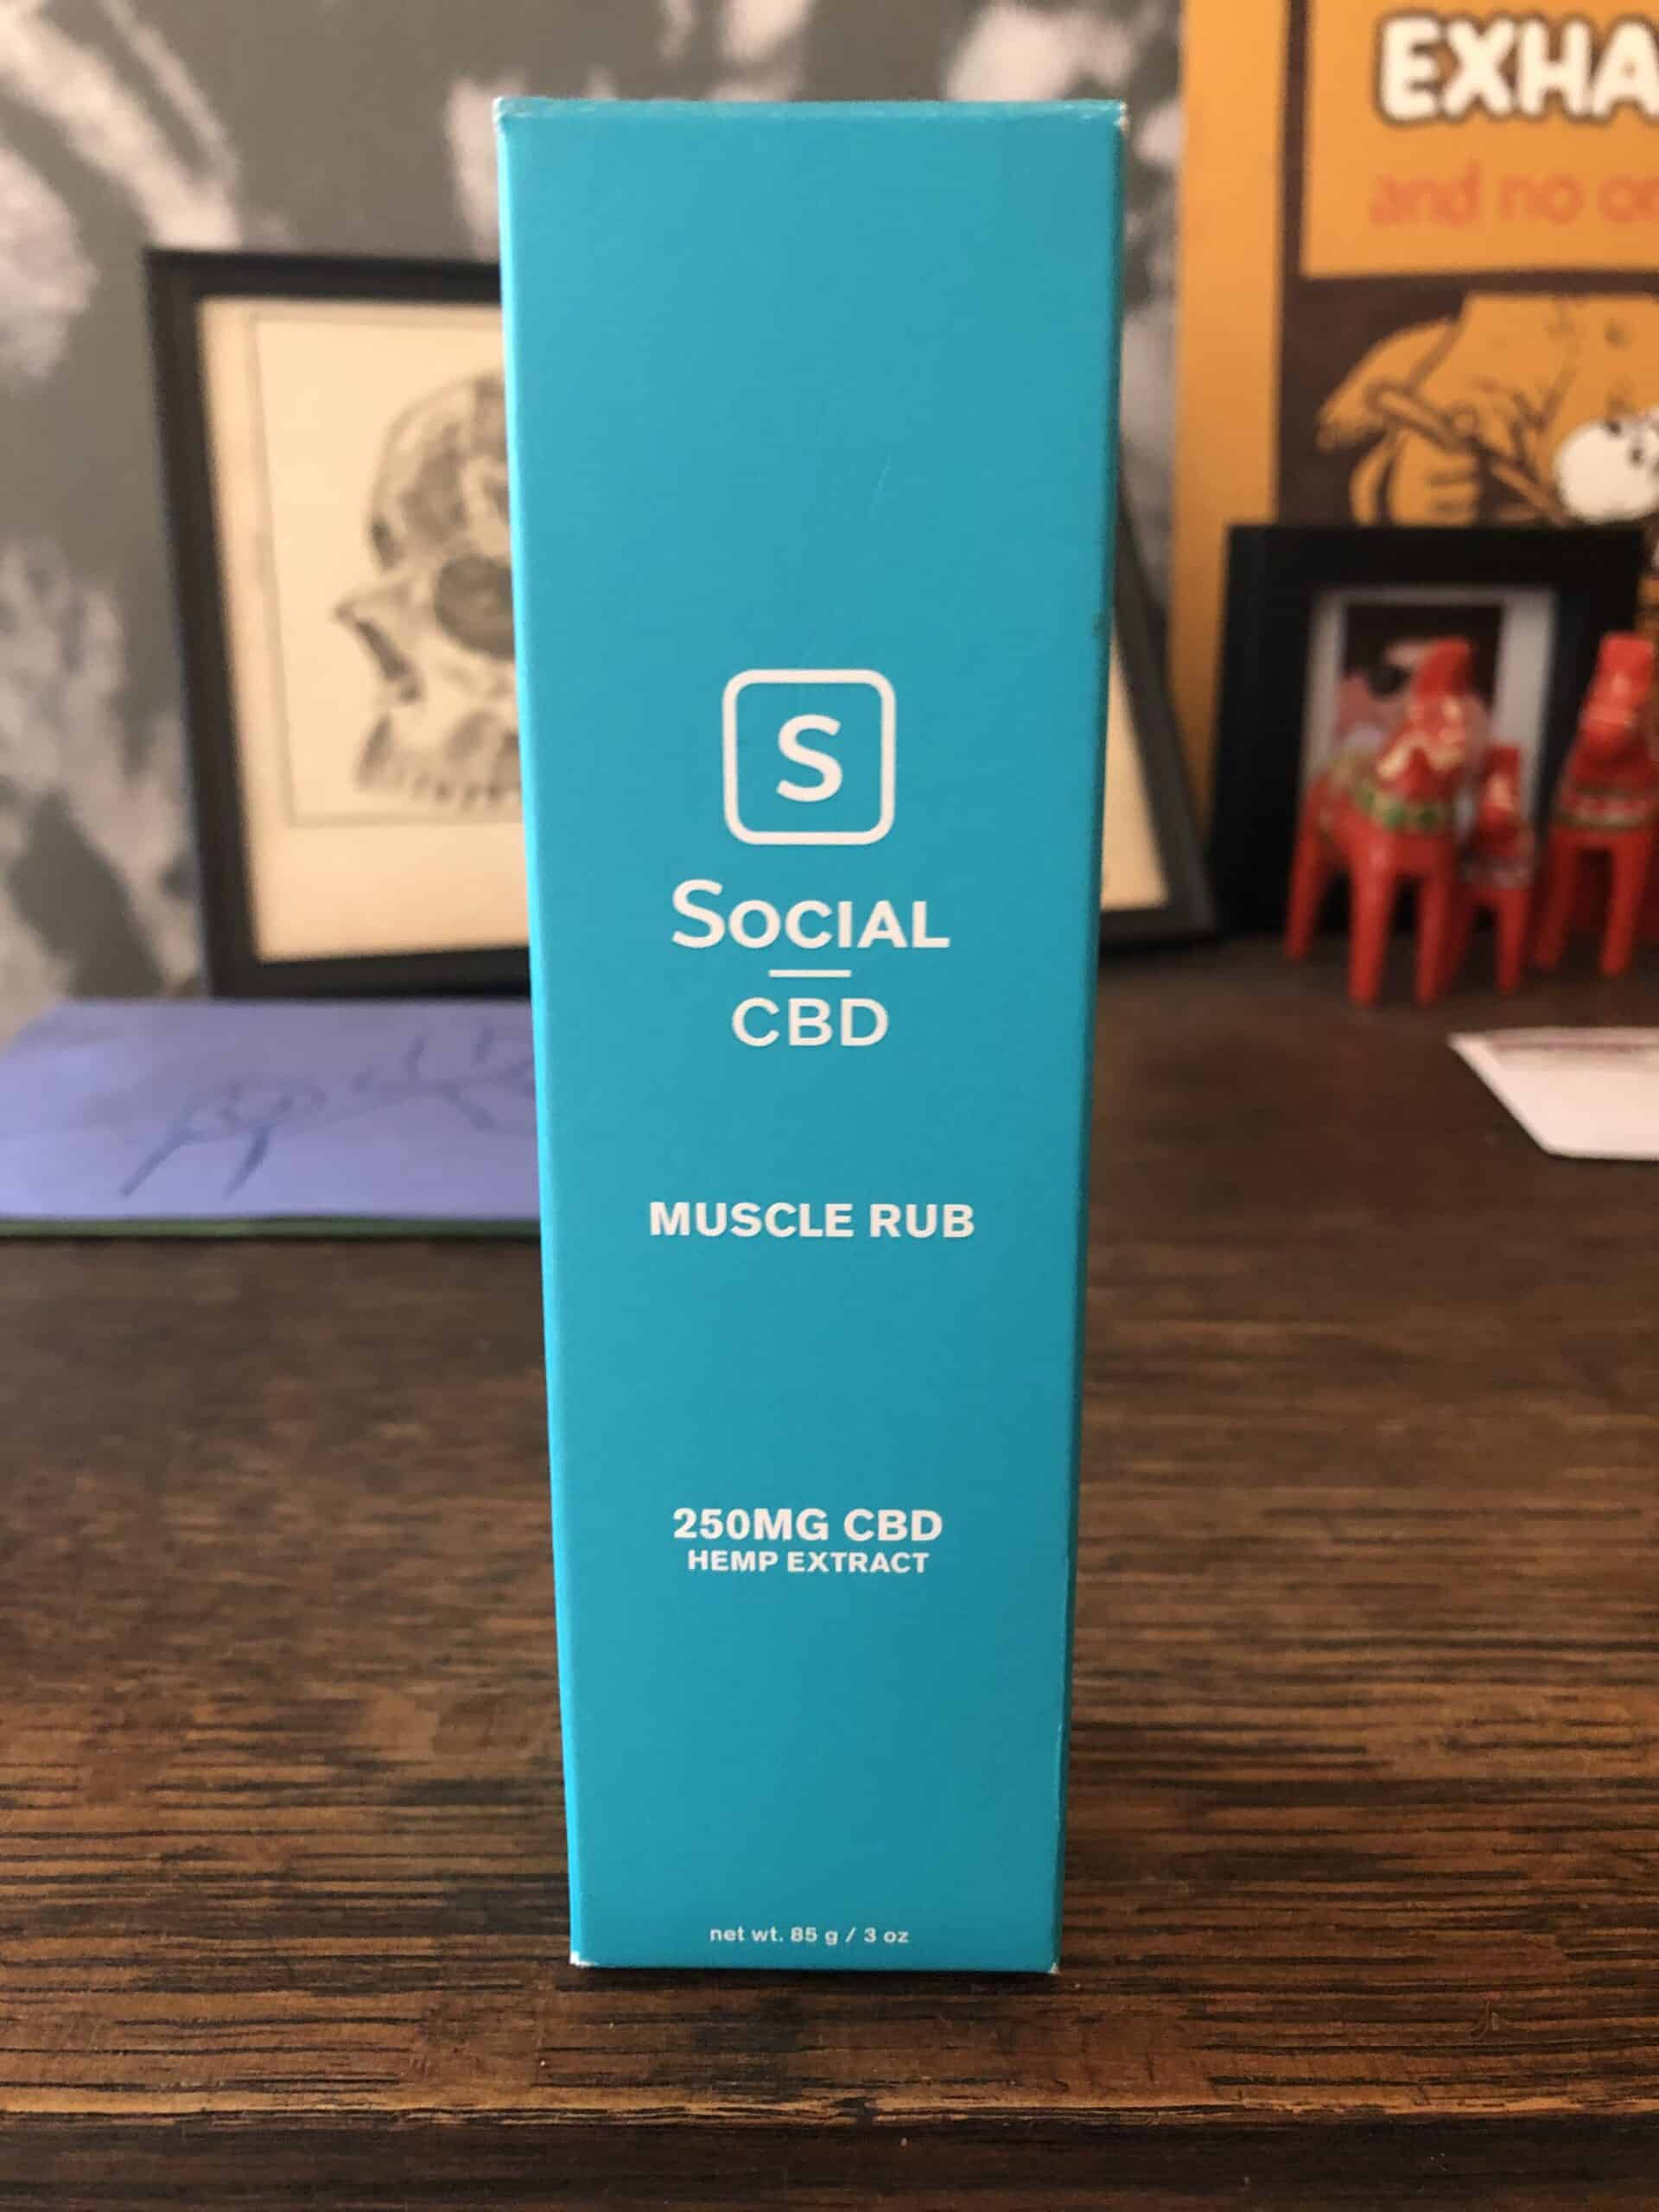 social cbd muscle rub save on cannabis review